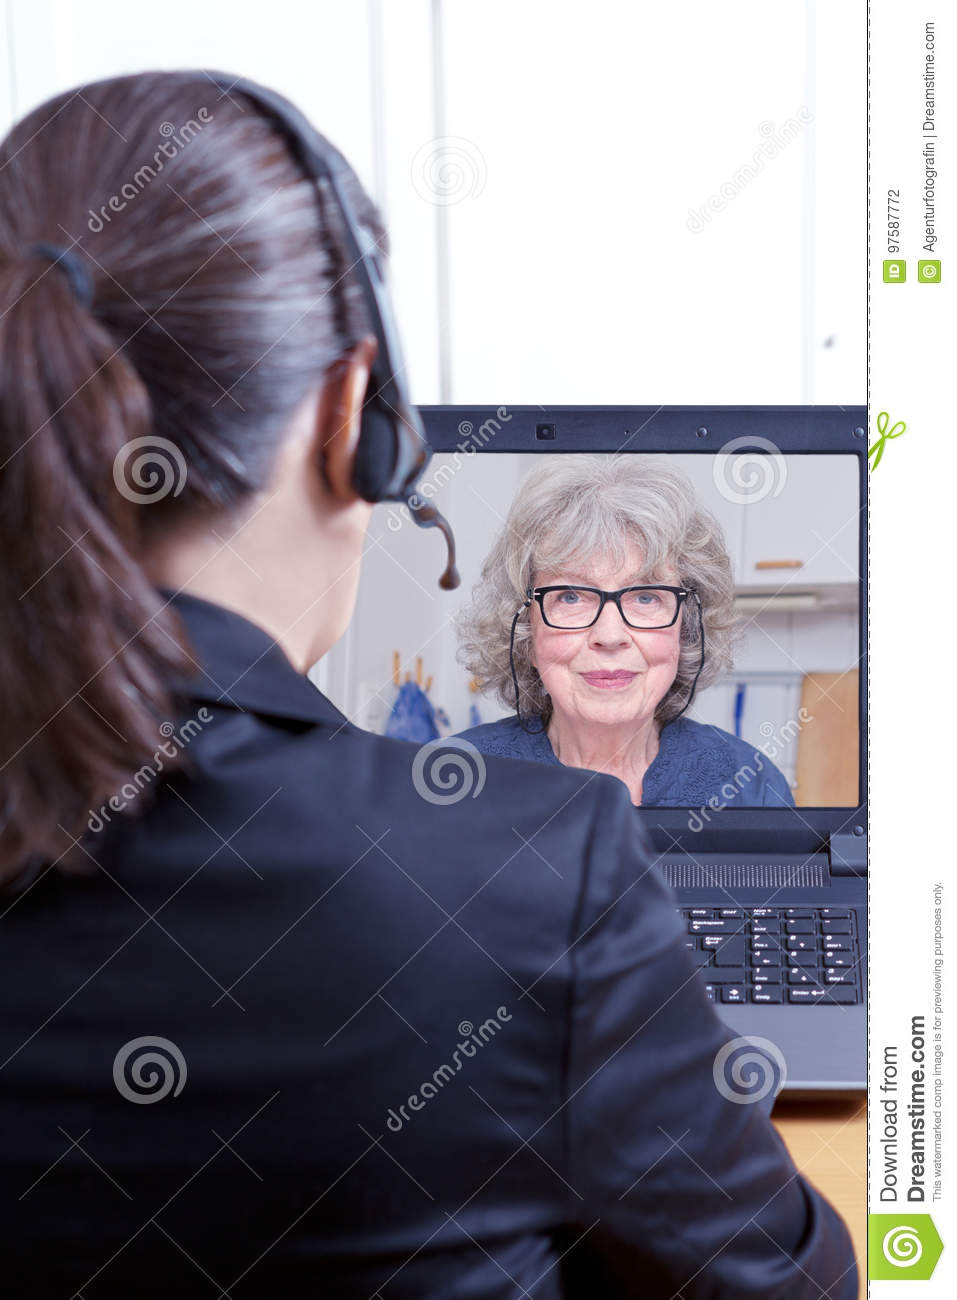 Attorney Client Online Video Call Stock Photo - Image of